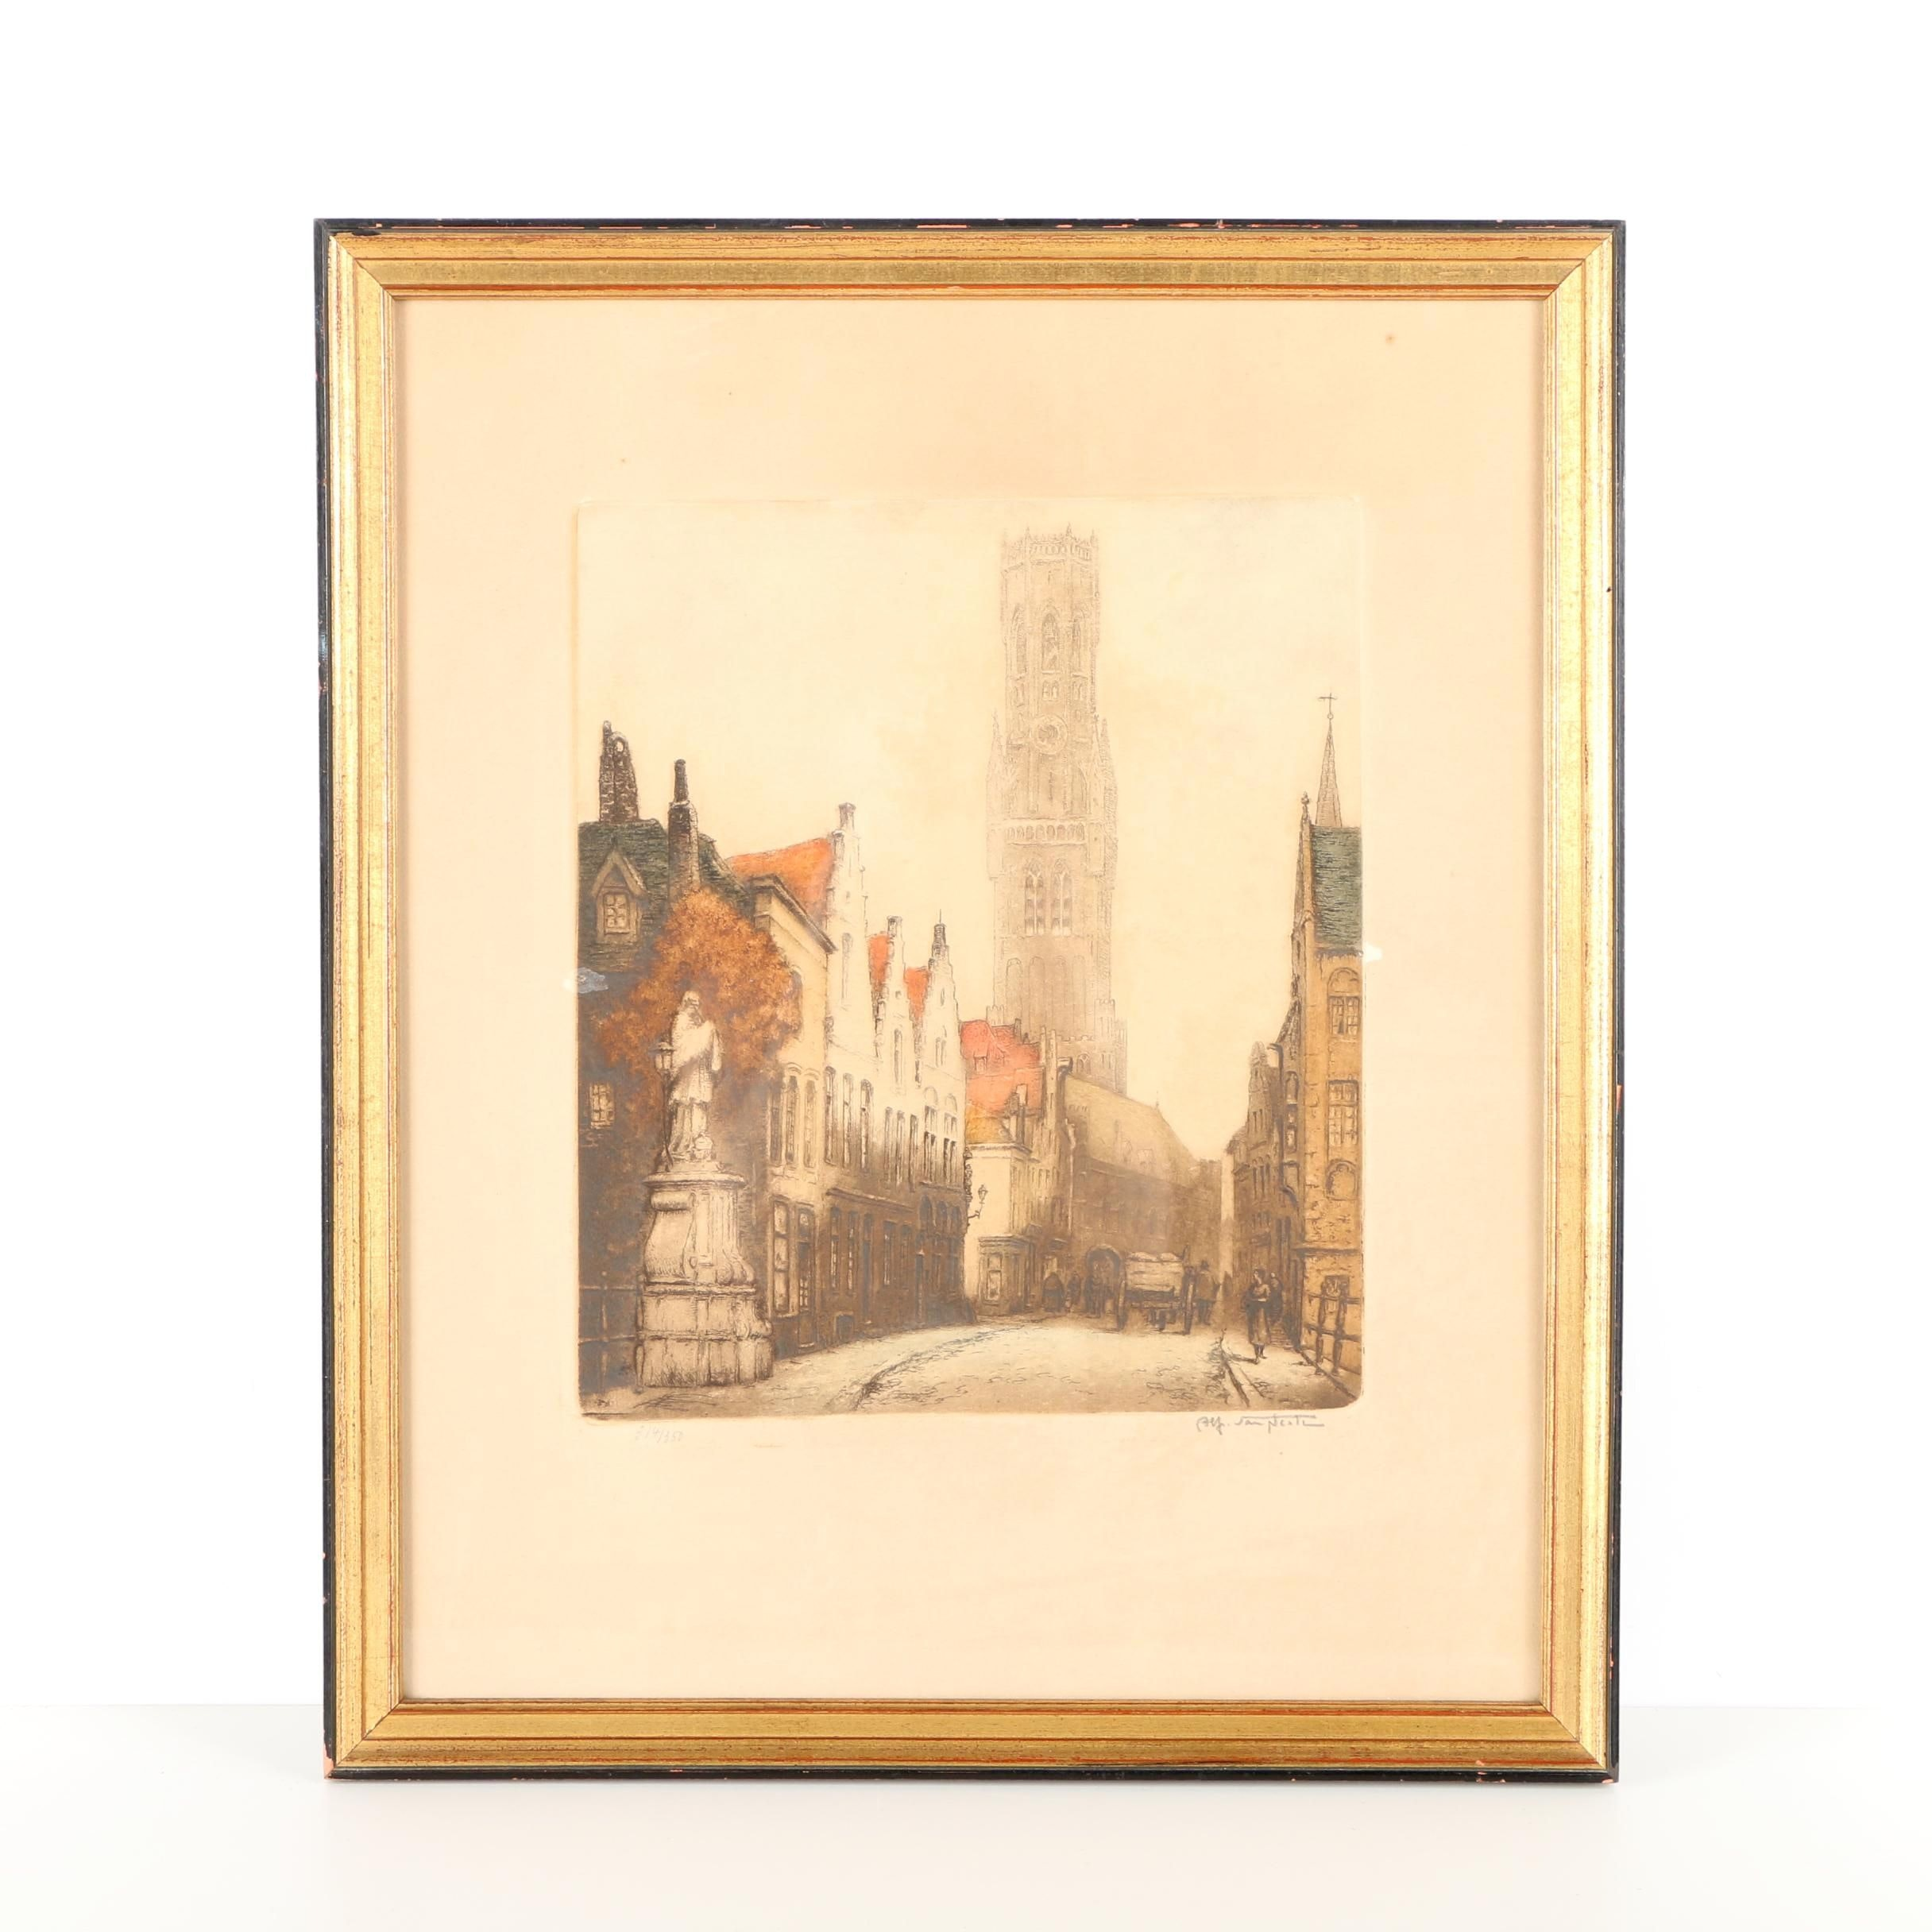 Limited Edition Etching on Paper of Medieval Architecture